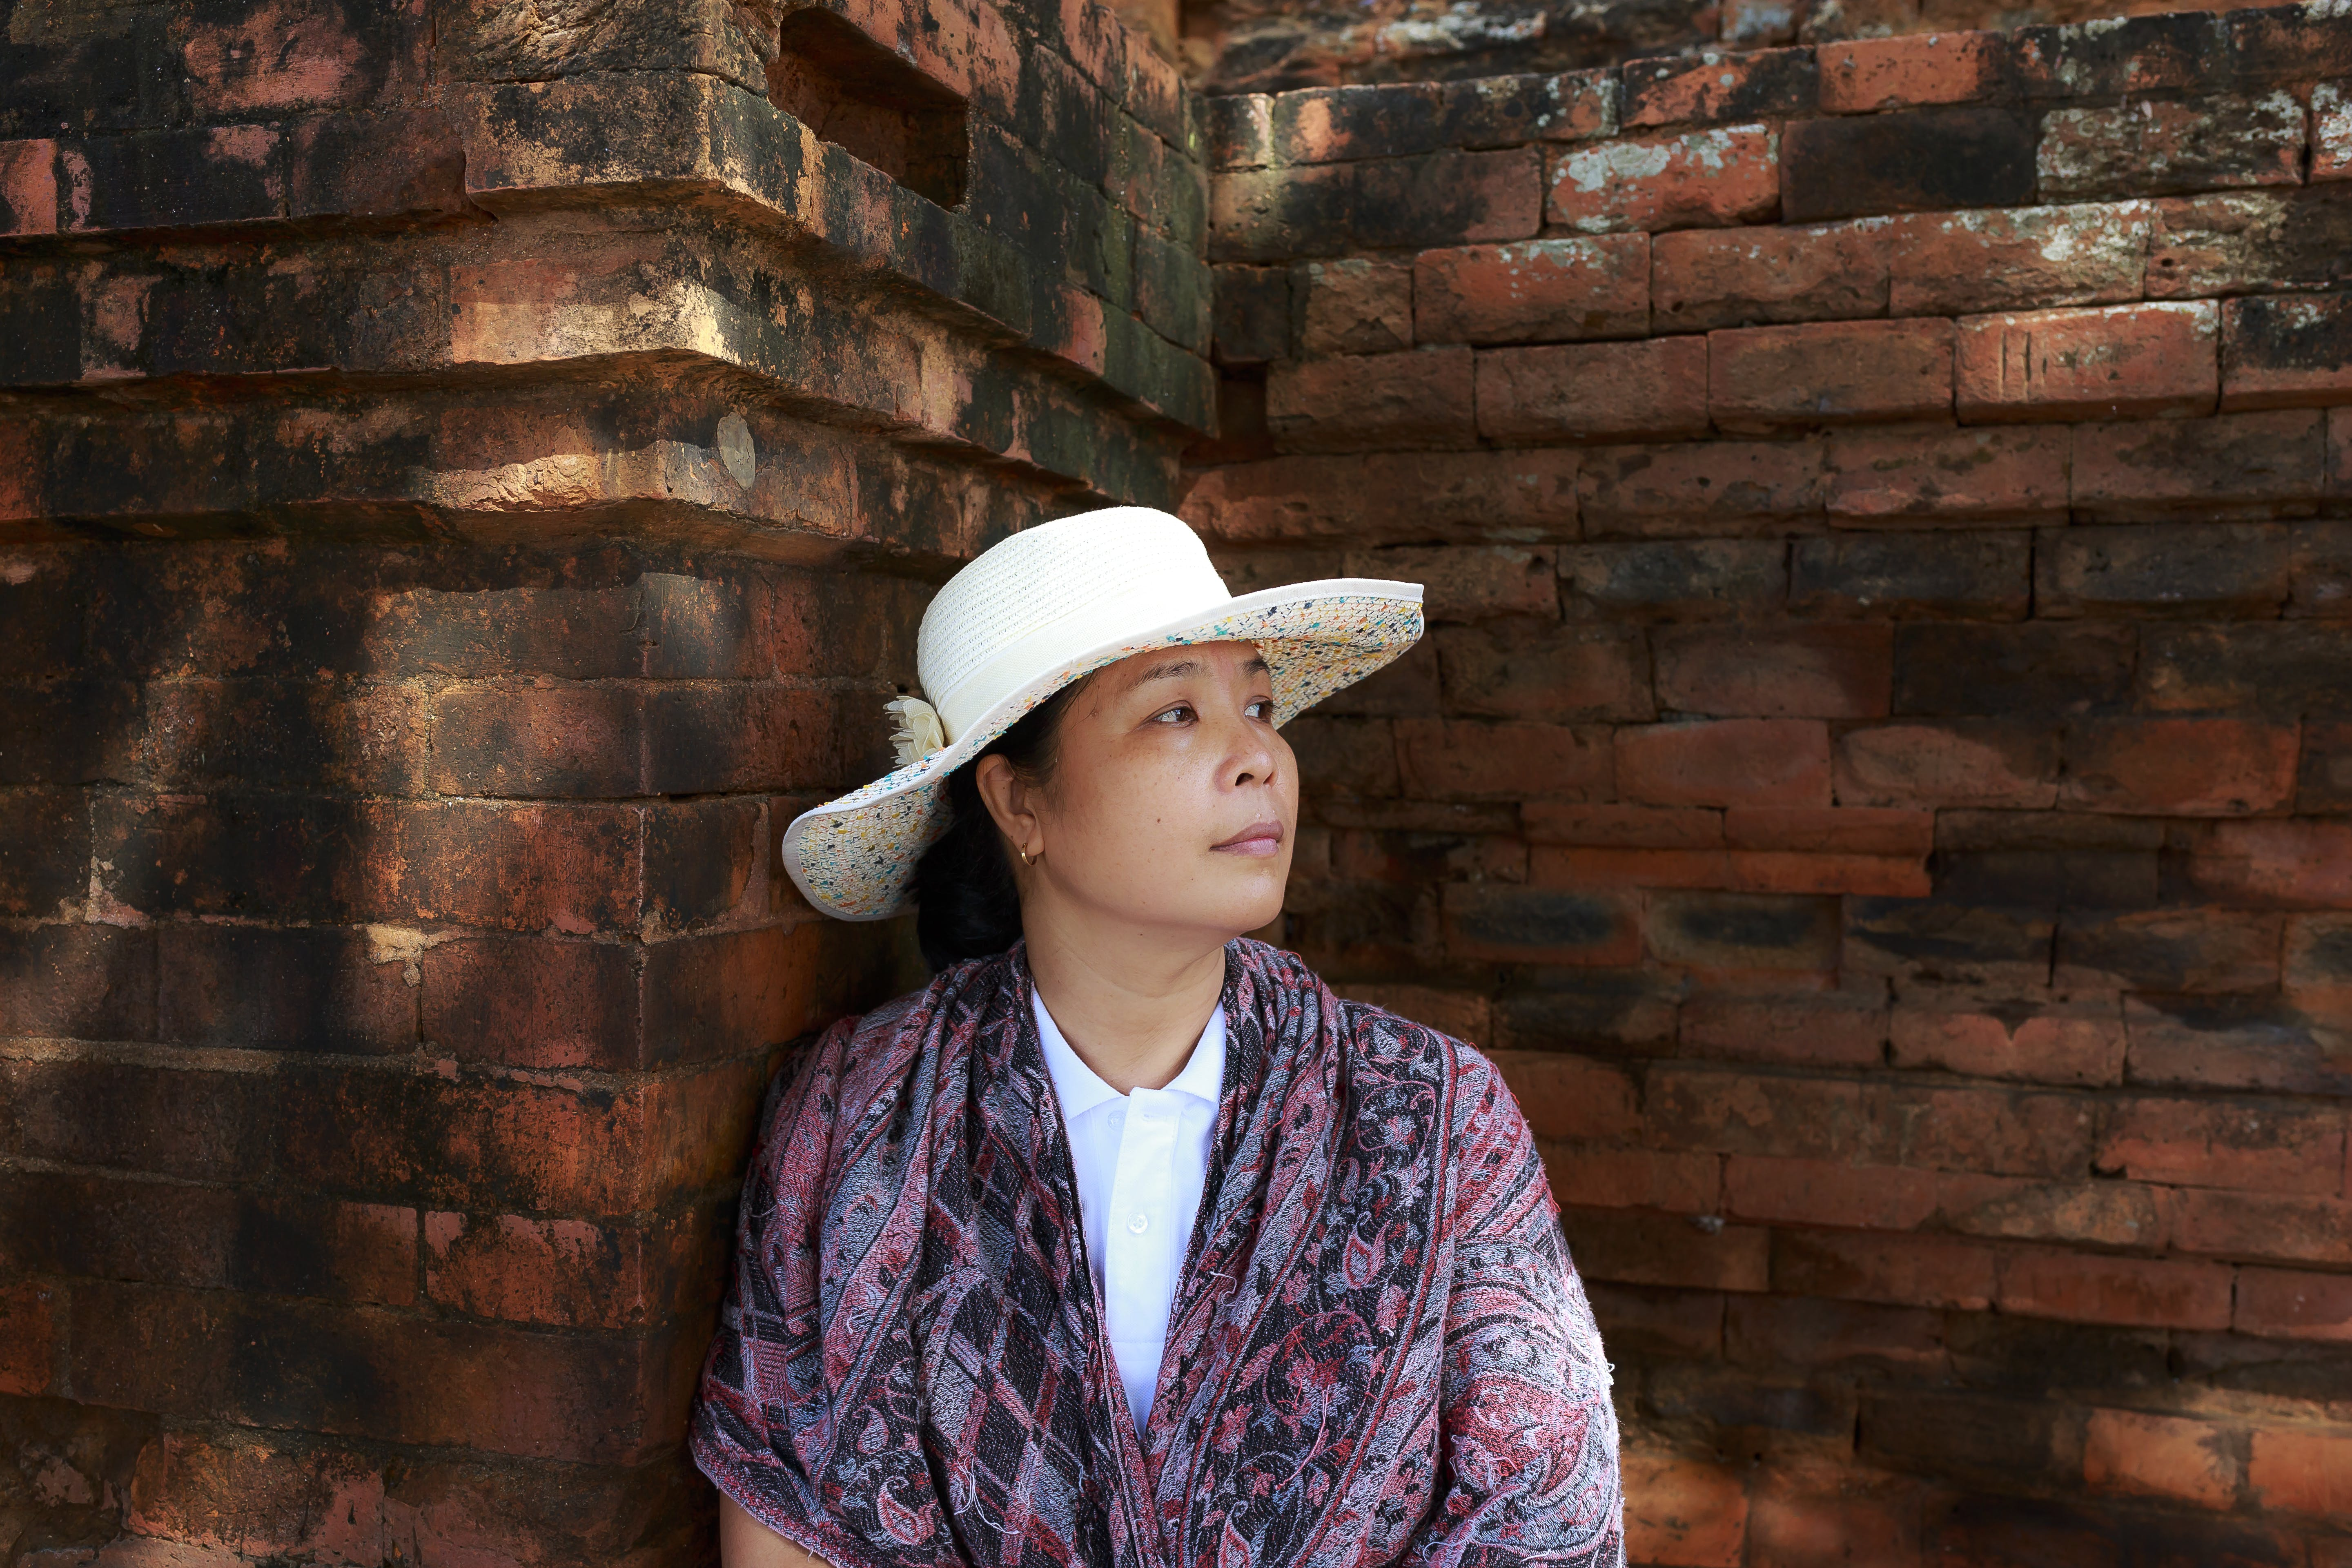 Woman Wearing White Hat Leaning on Brown Wall